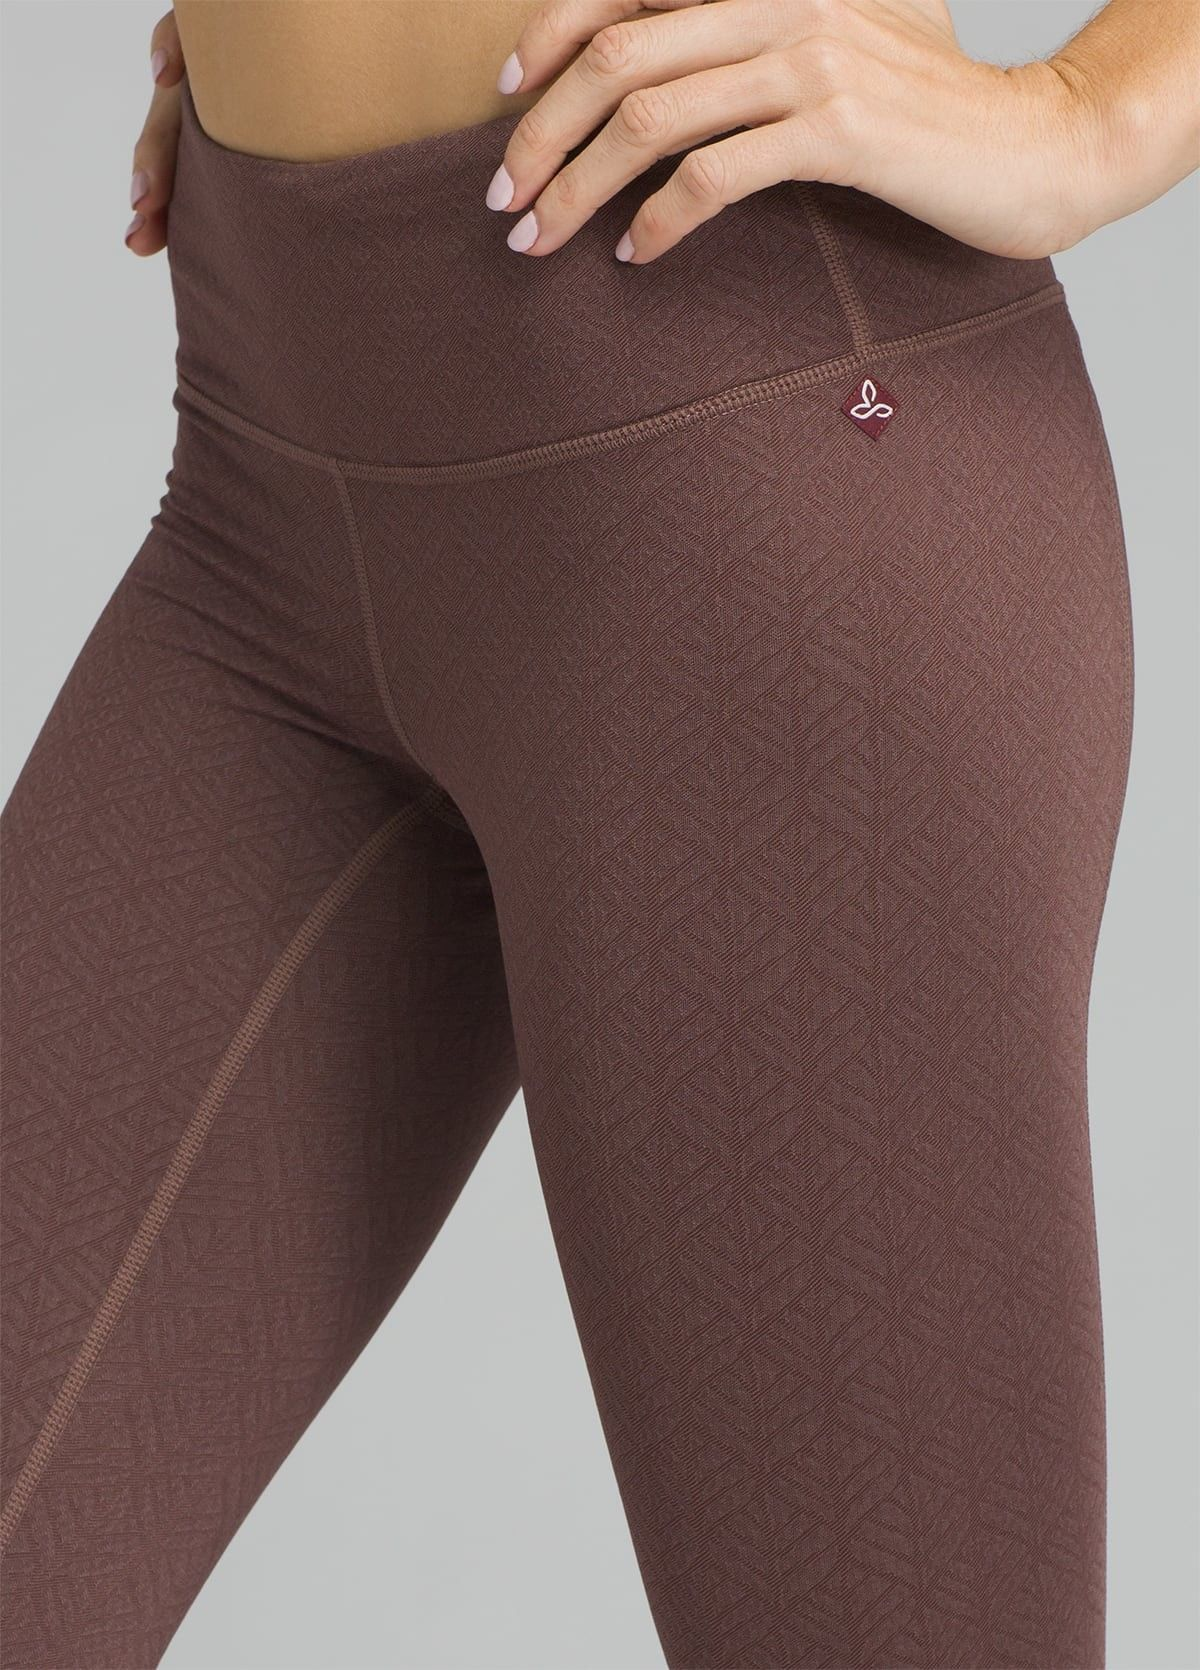 f7846e6d0c I love the prAna Misty Legging! Check it out and more at www.prAna.com